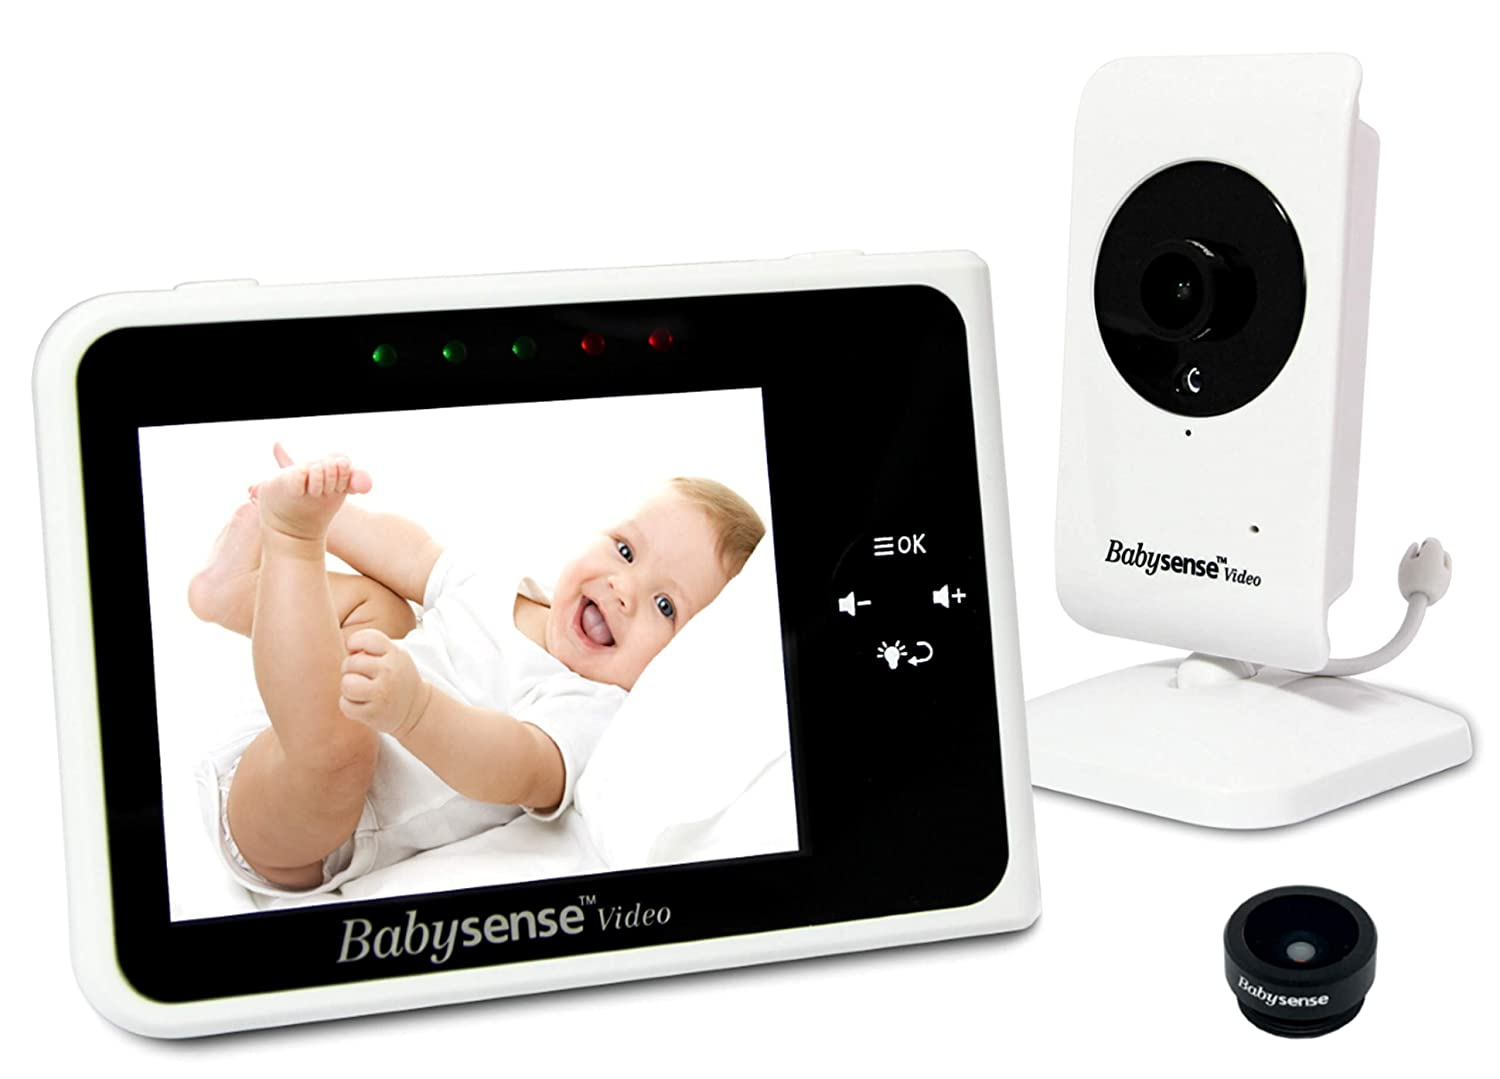 Babysense Video Baby Monitor 3.5 Inch Screen – Wide Angle Lens Included, Night Vision, Talk Back, Room Temperature, Lullabies, White Noise, Long Range and Battery Life